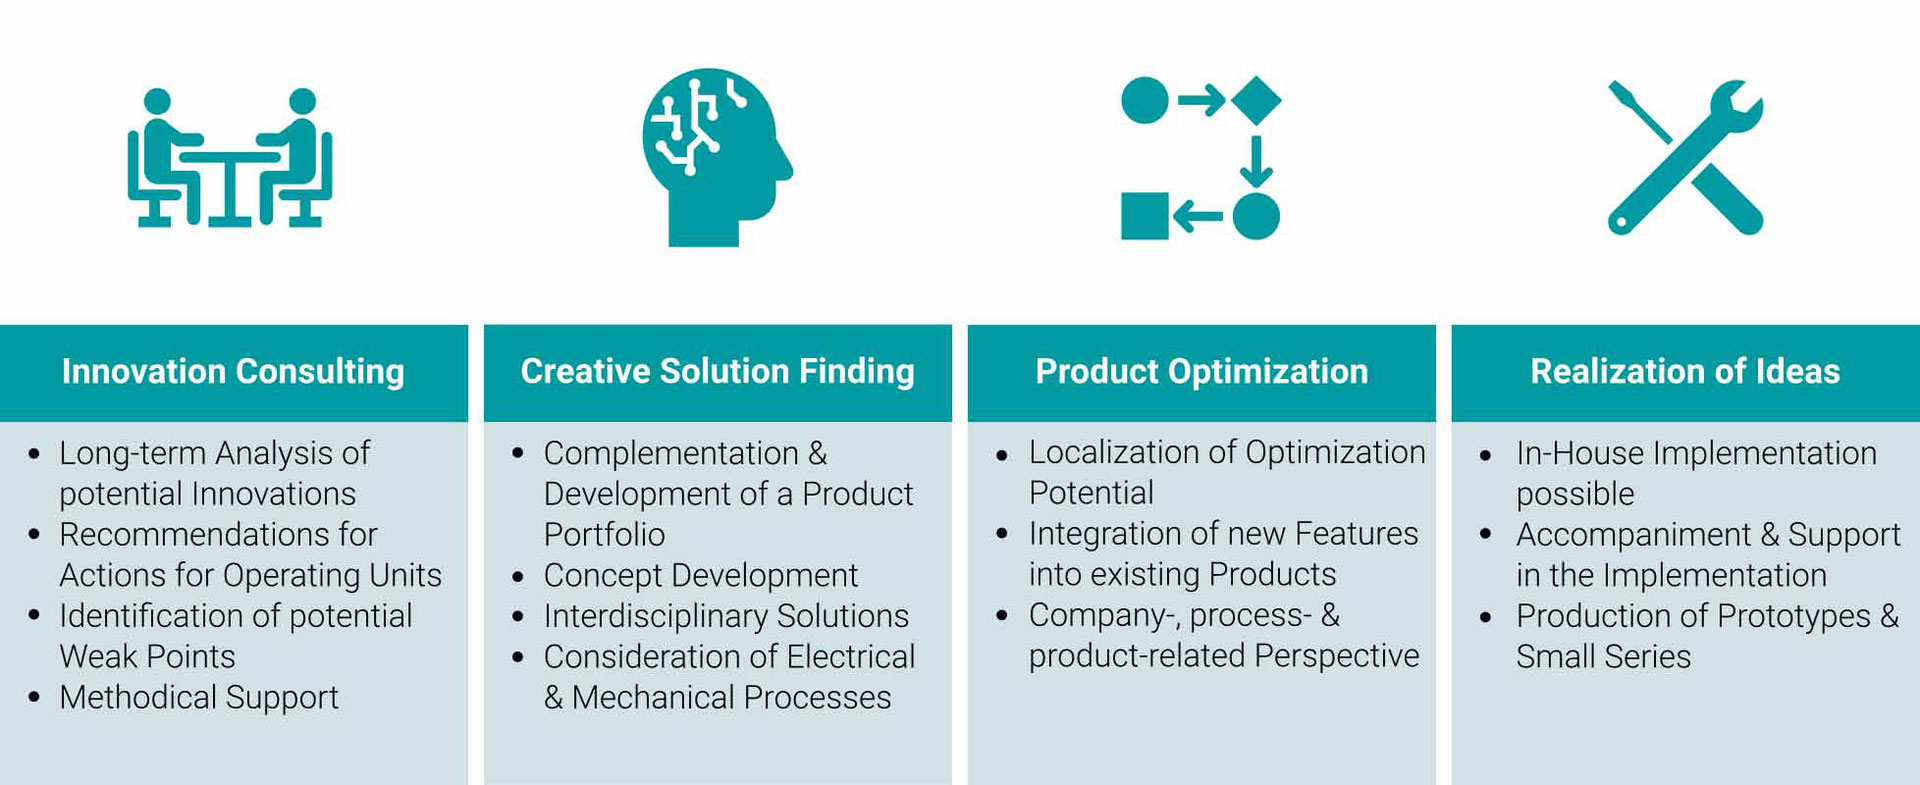 paXos Think Tank: Innovation Consulting, Creative Solution Finding, Product Optimization and Realization of Ideas